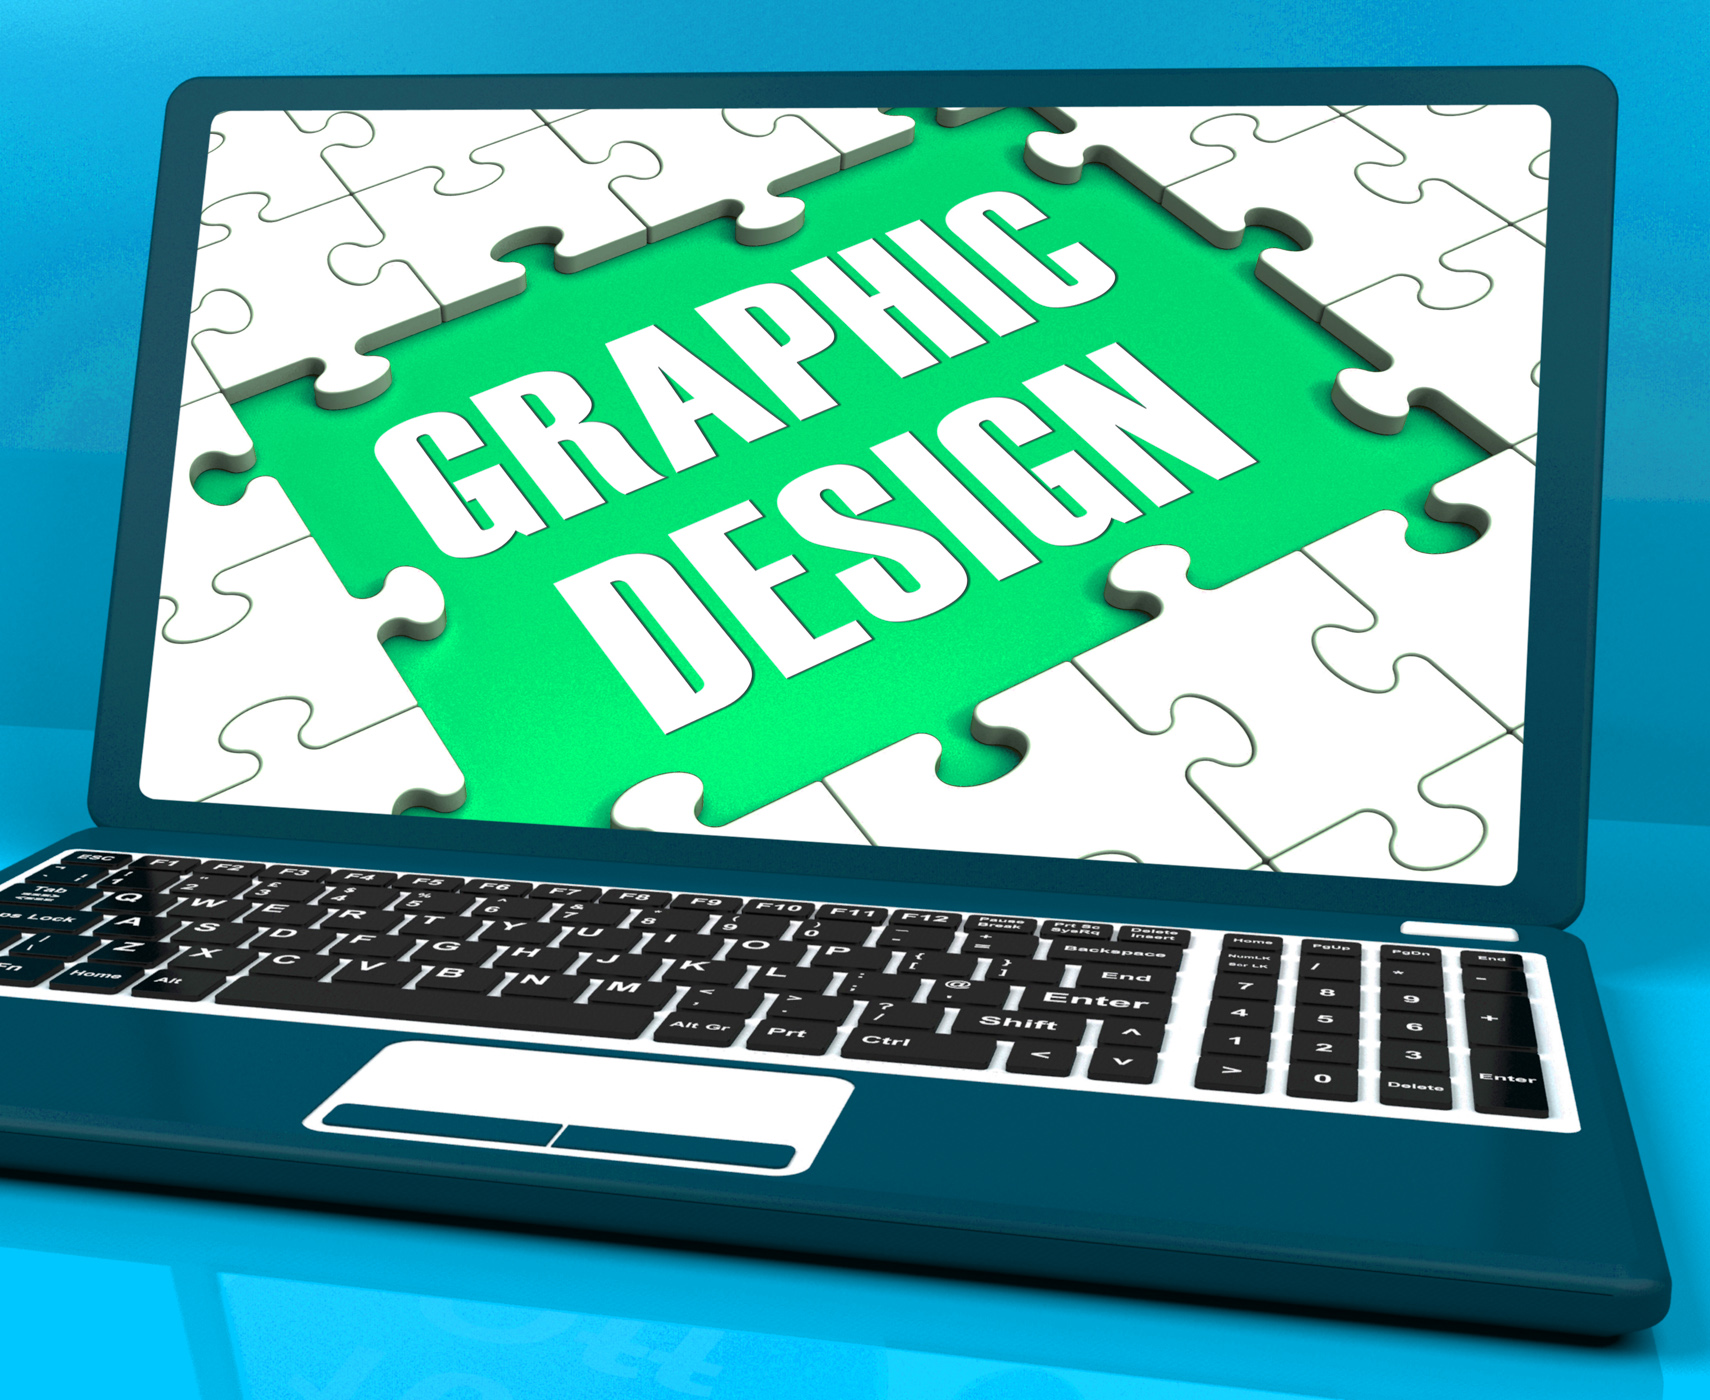 Graphic design on laptop shows stylized creations photo